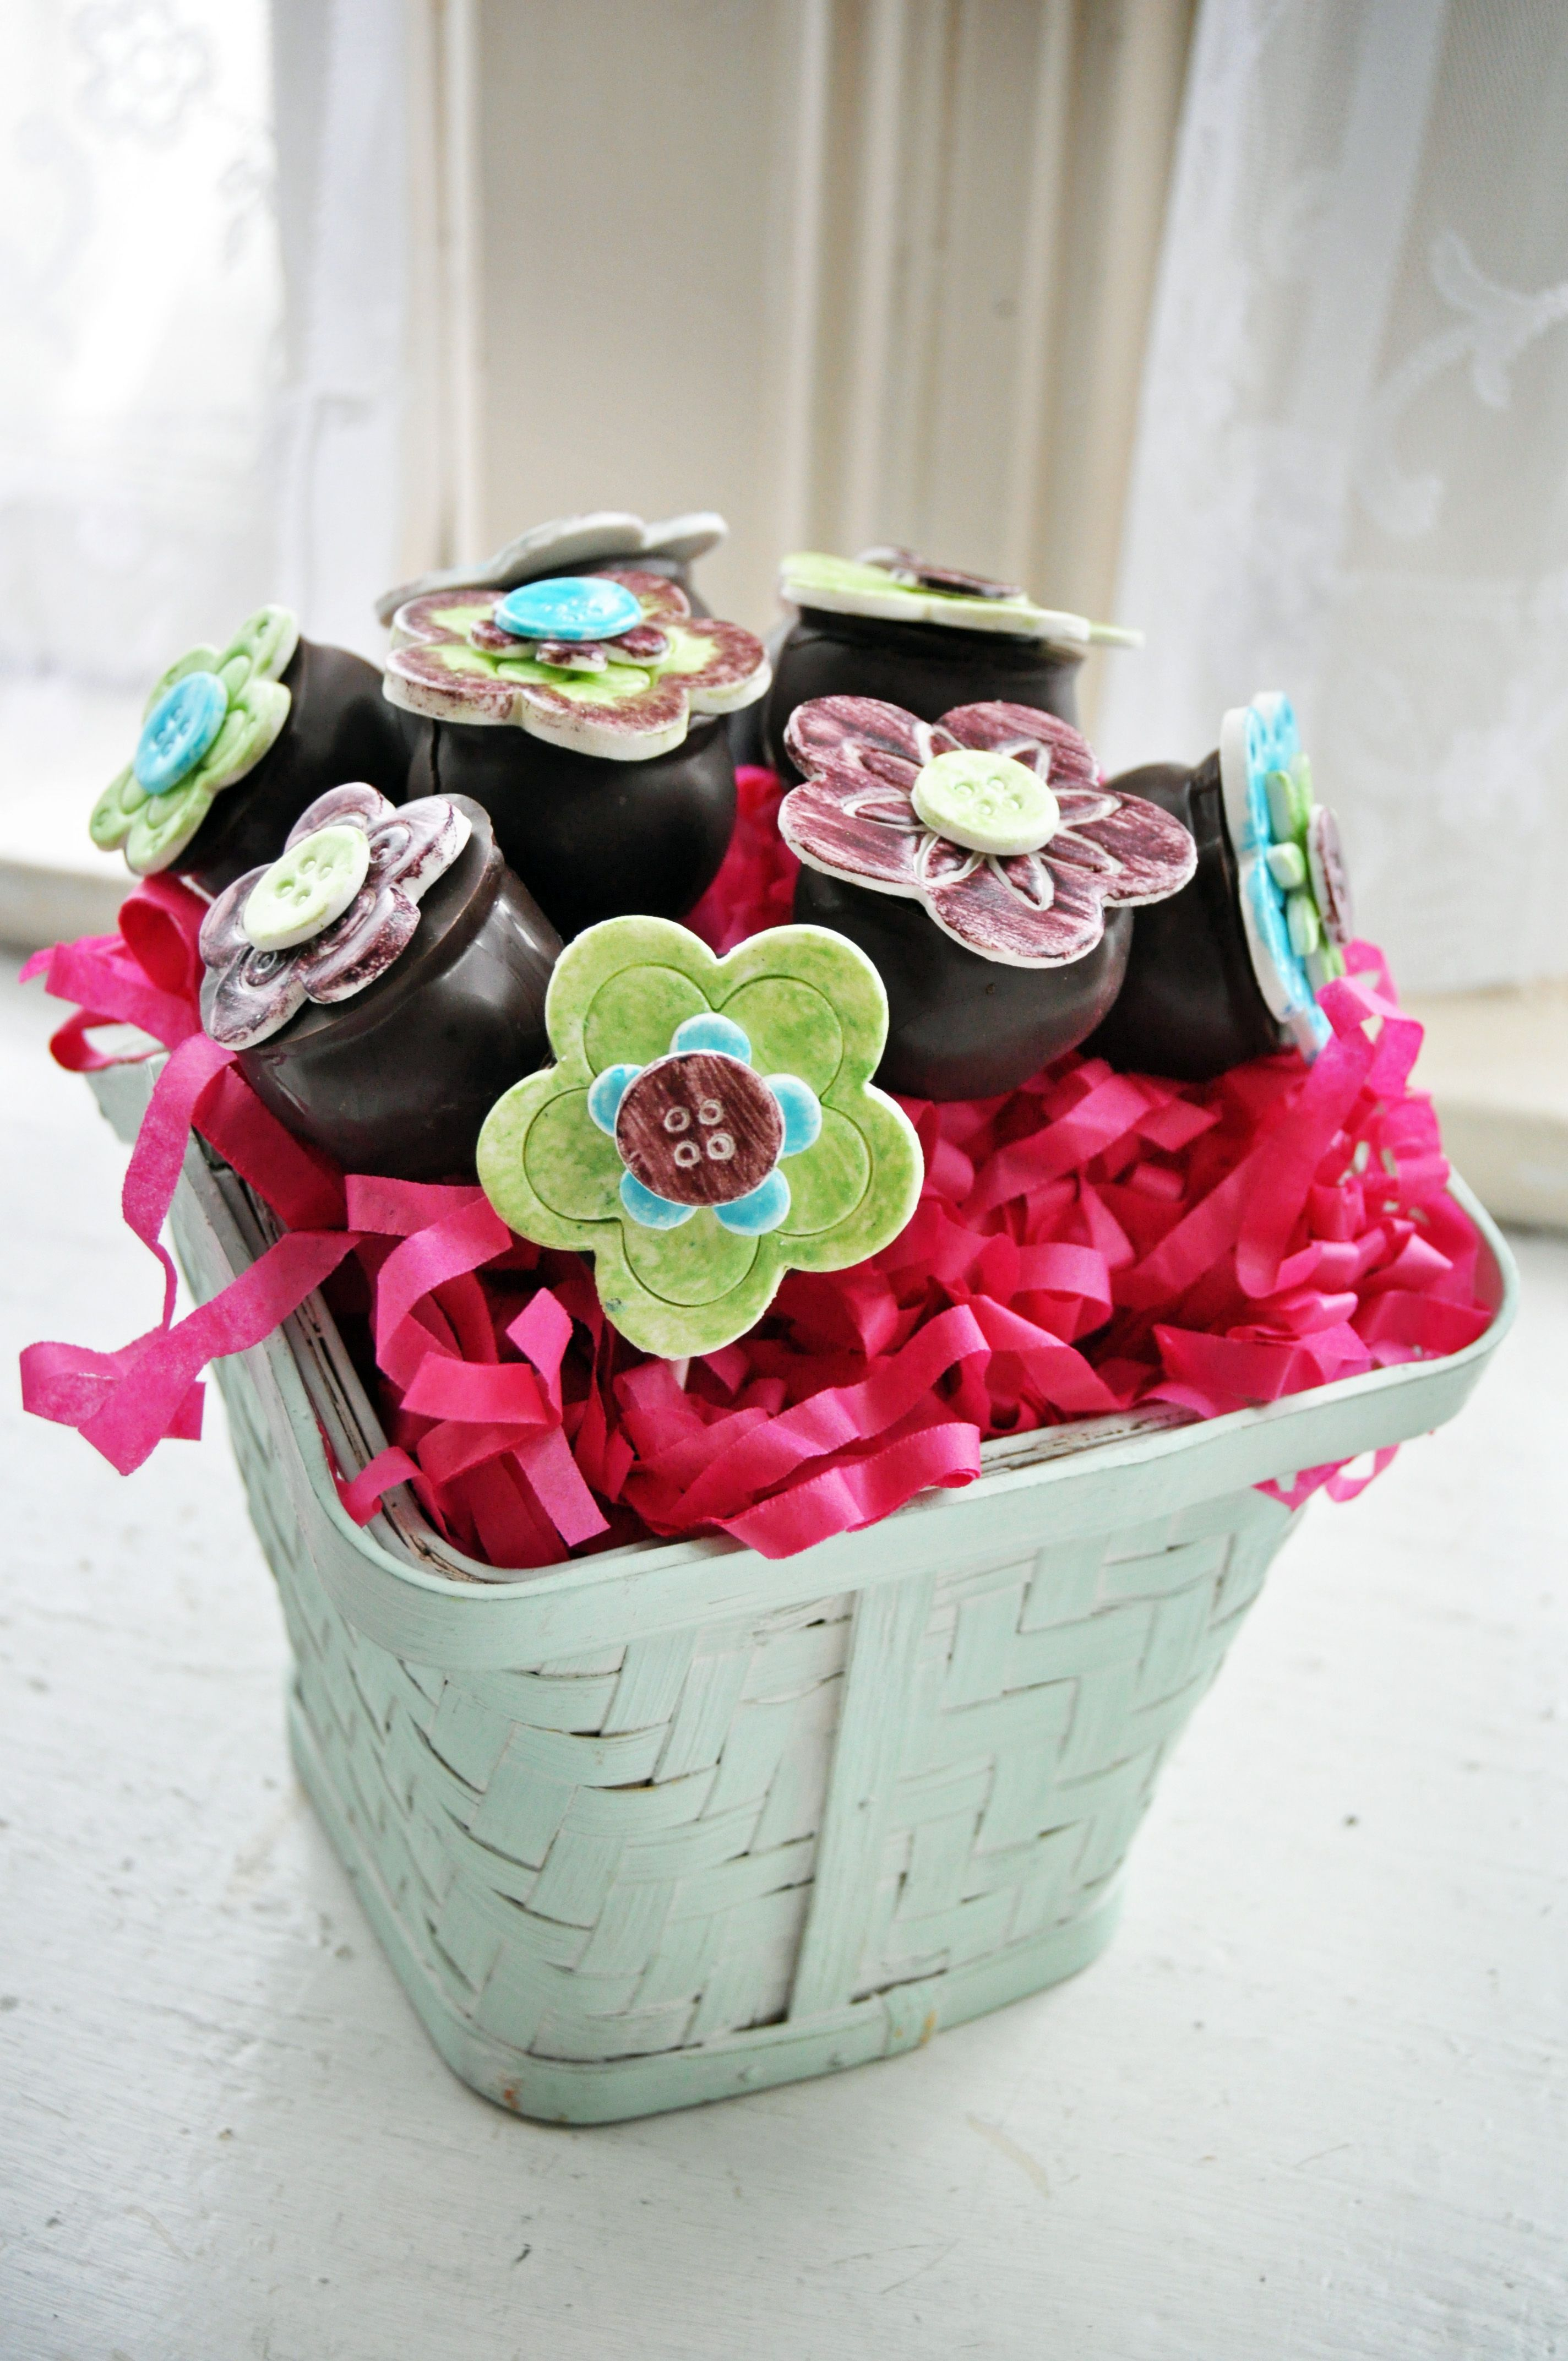 Whimsical Cake Pop Bouquet!  Perfect centerpiece idea, or Mother's Day gift. #cakepopbouquet